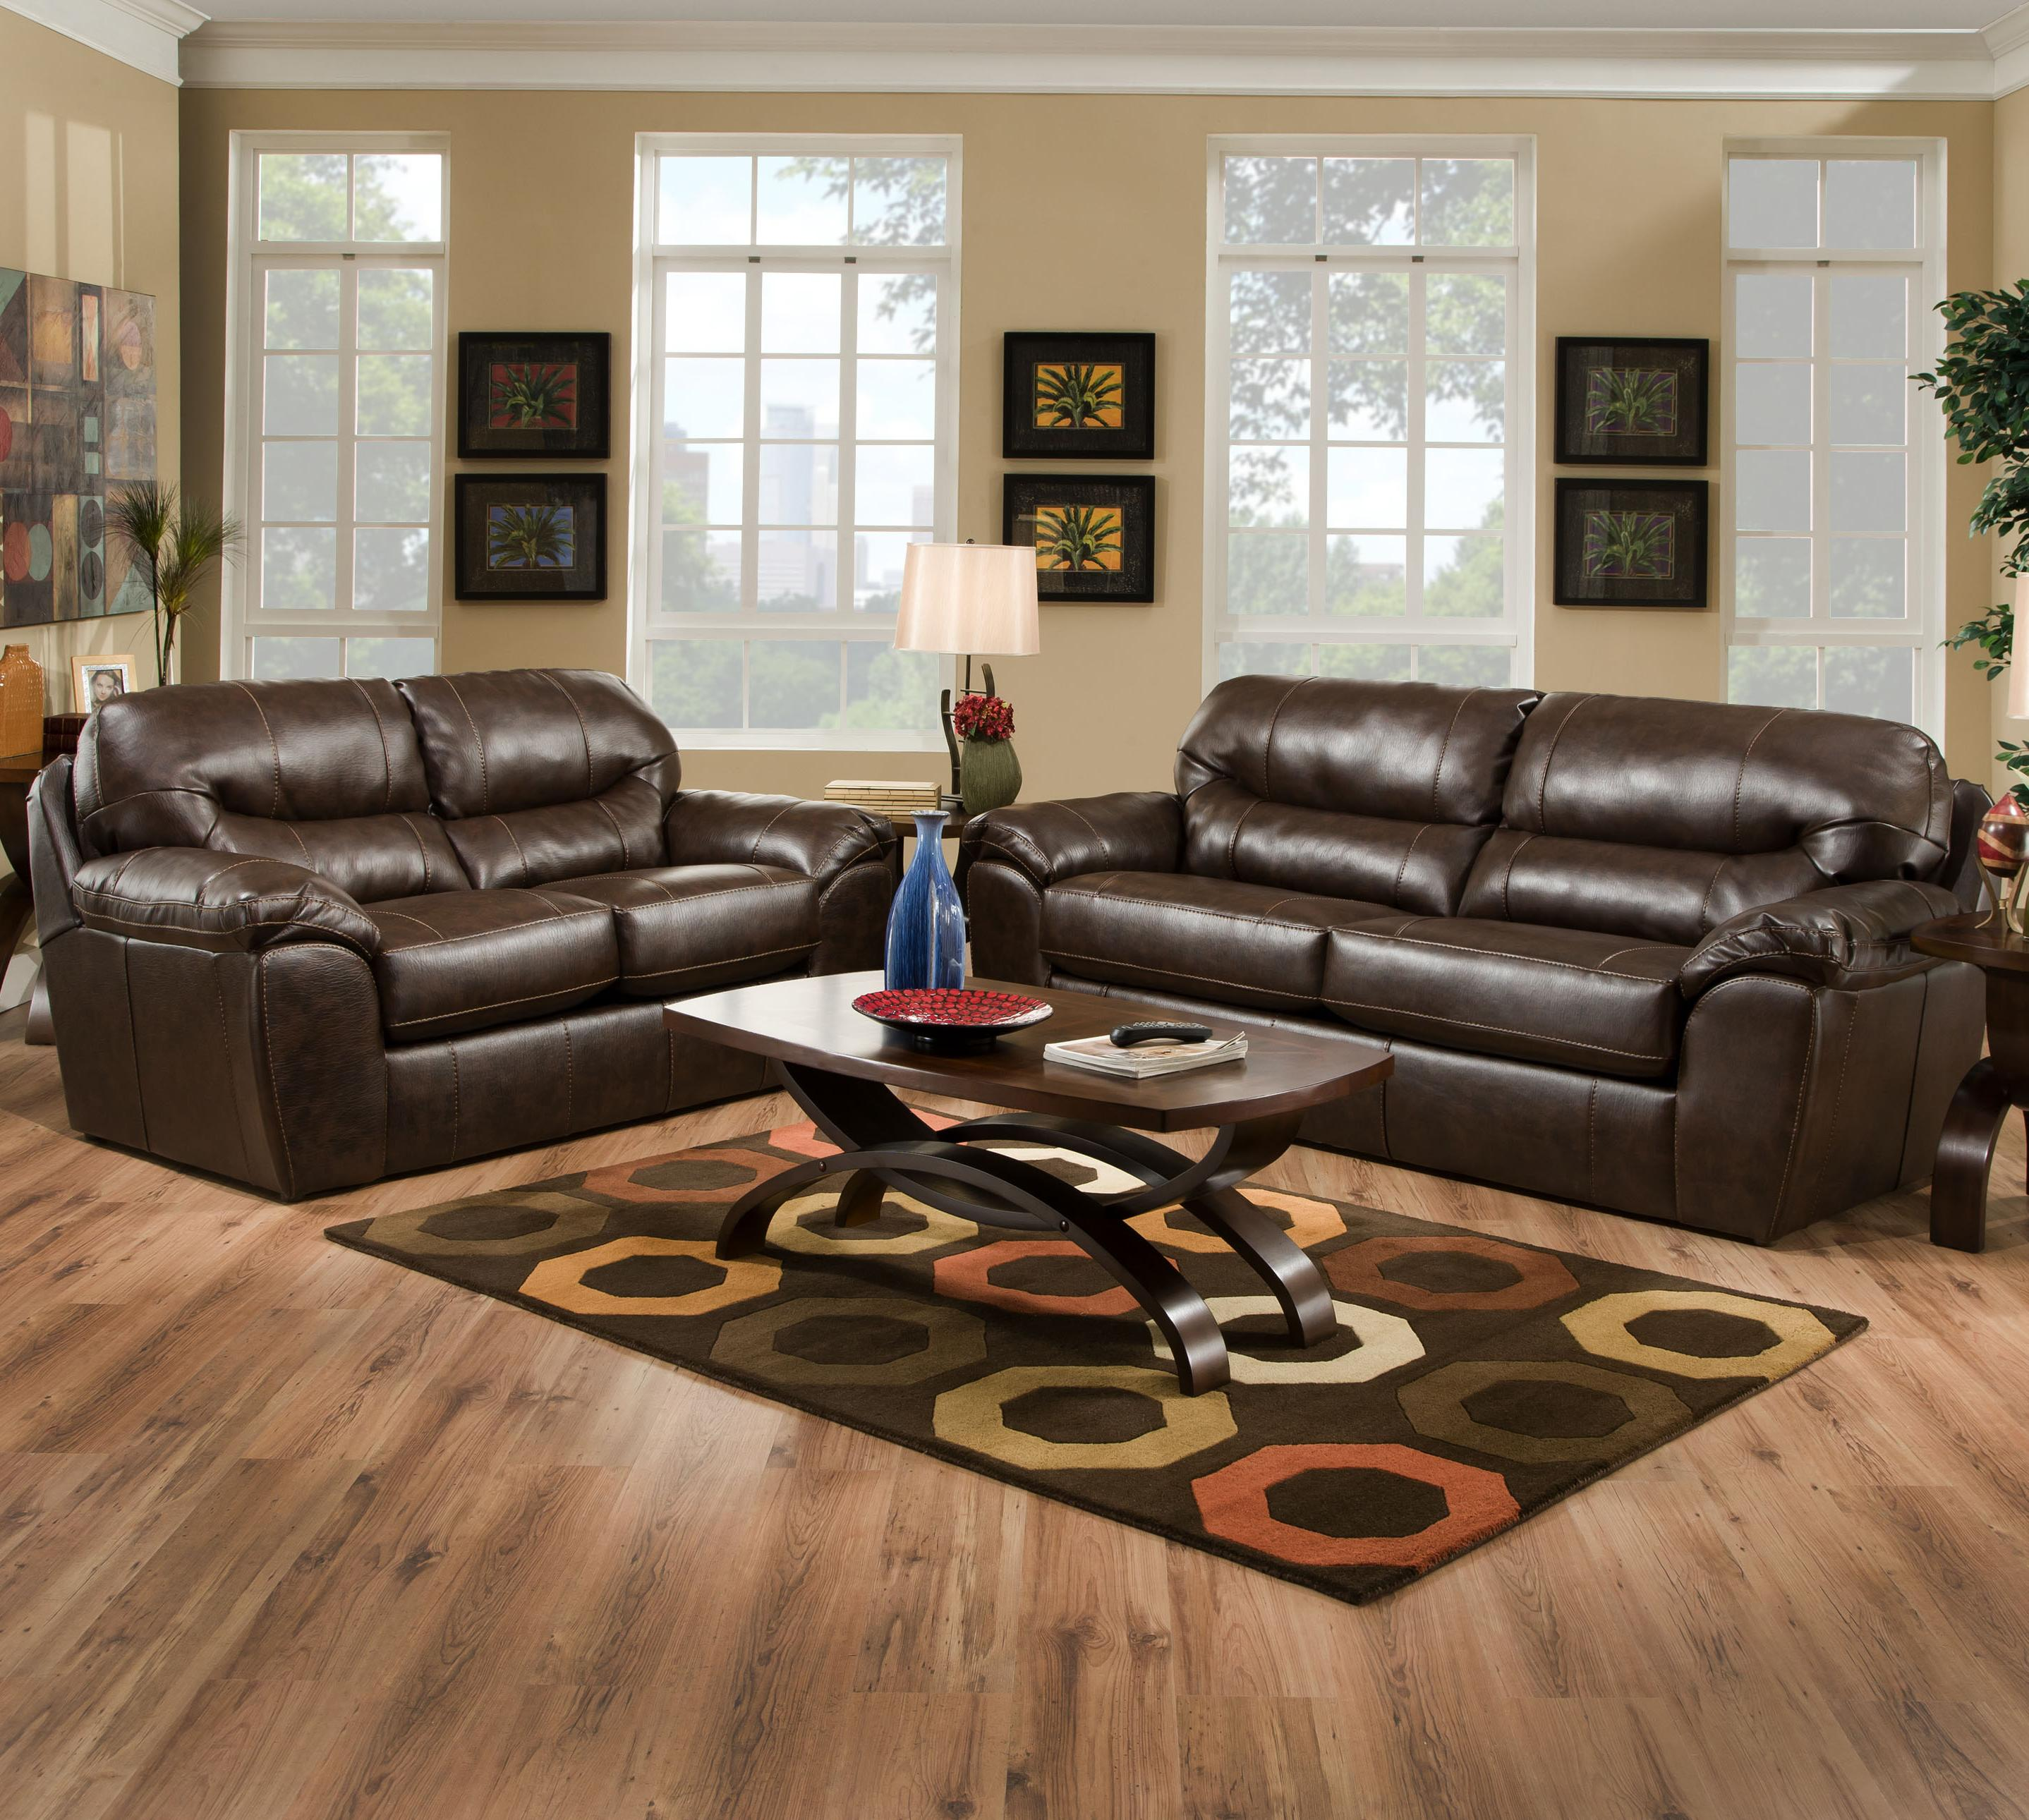 Casual Chairs For Family Room Part - 26: Faux Leather Casual And Comfortable Family Room Sofa Sleeper. By Jackson  Furniture